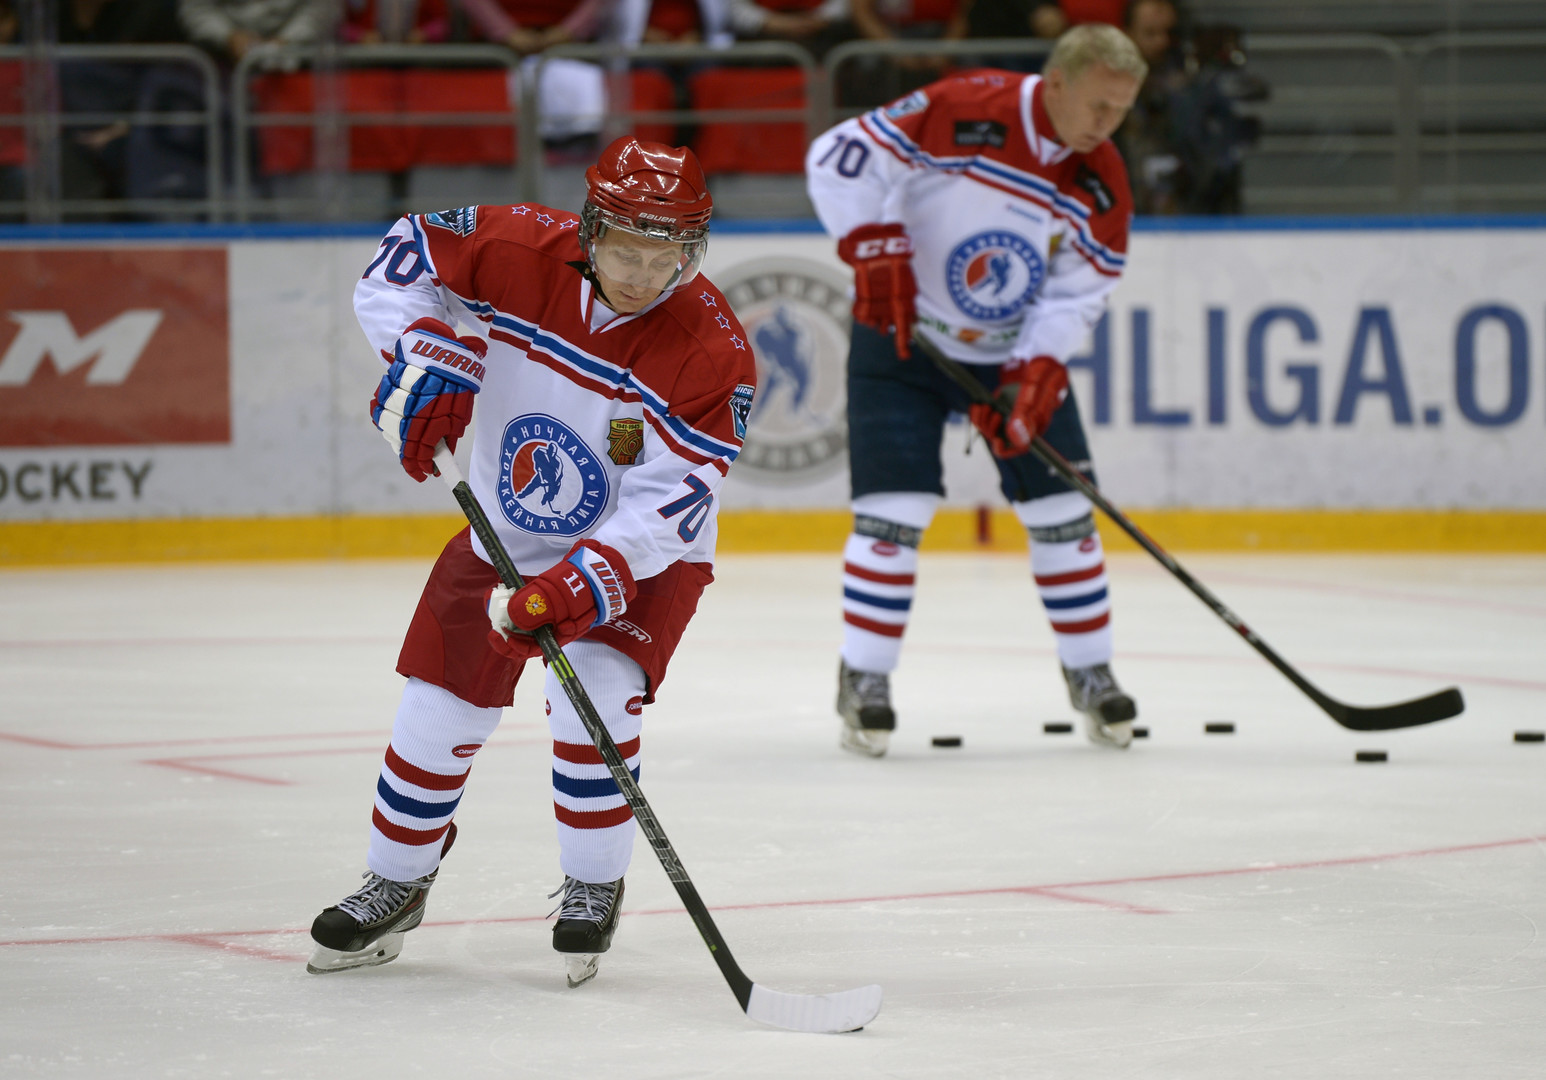 Putin wore the number 70 on the back of his shirt to participate in an all-star team that included a number of politicians and former star players of the game